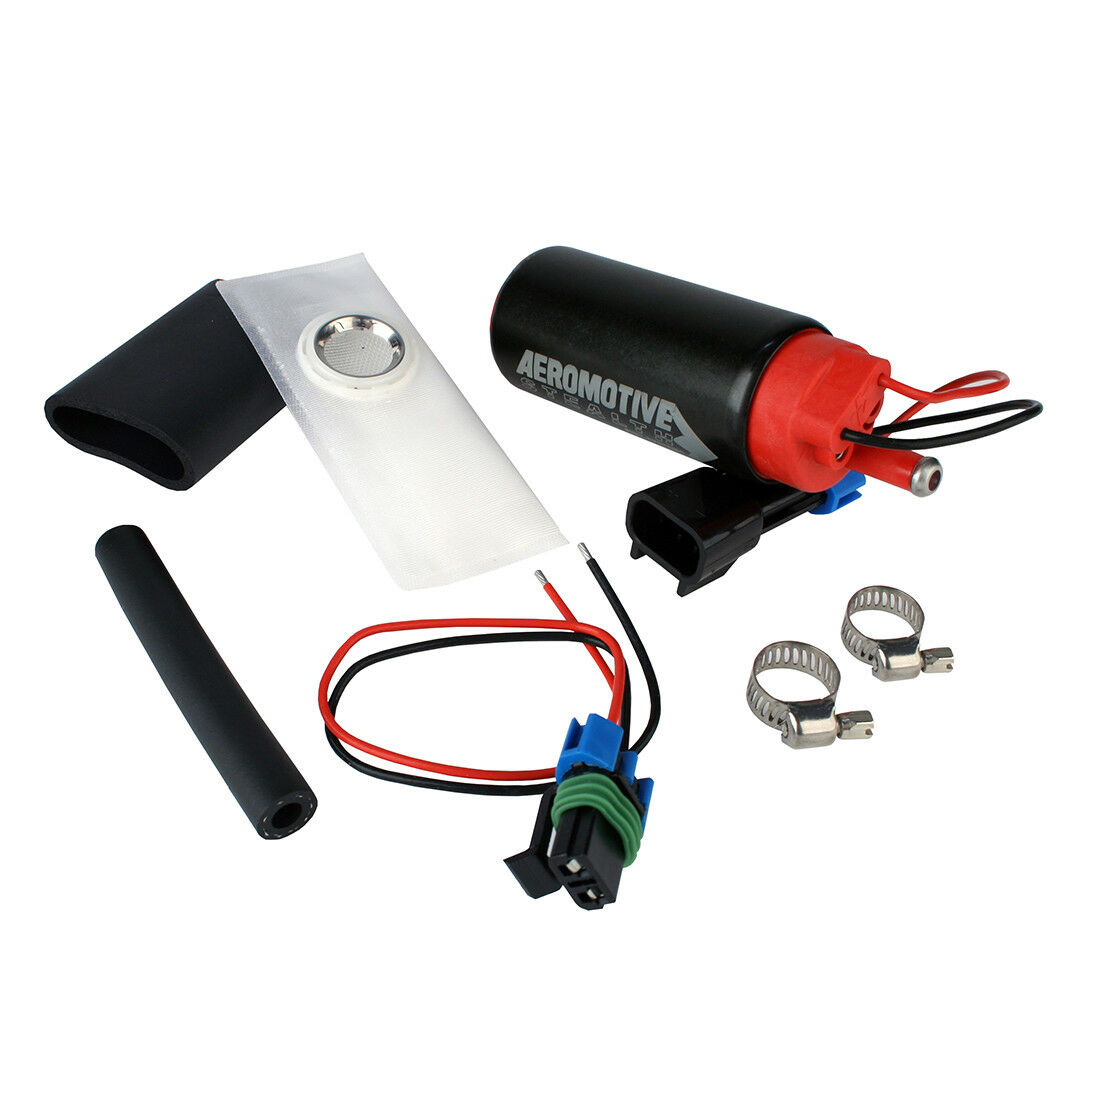 Center Inlet In-Tank Pump Aeromotive 11540 E85 340 Stealth Electric Fuel Pump